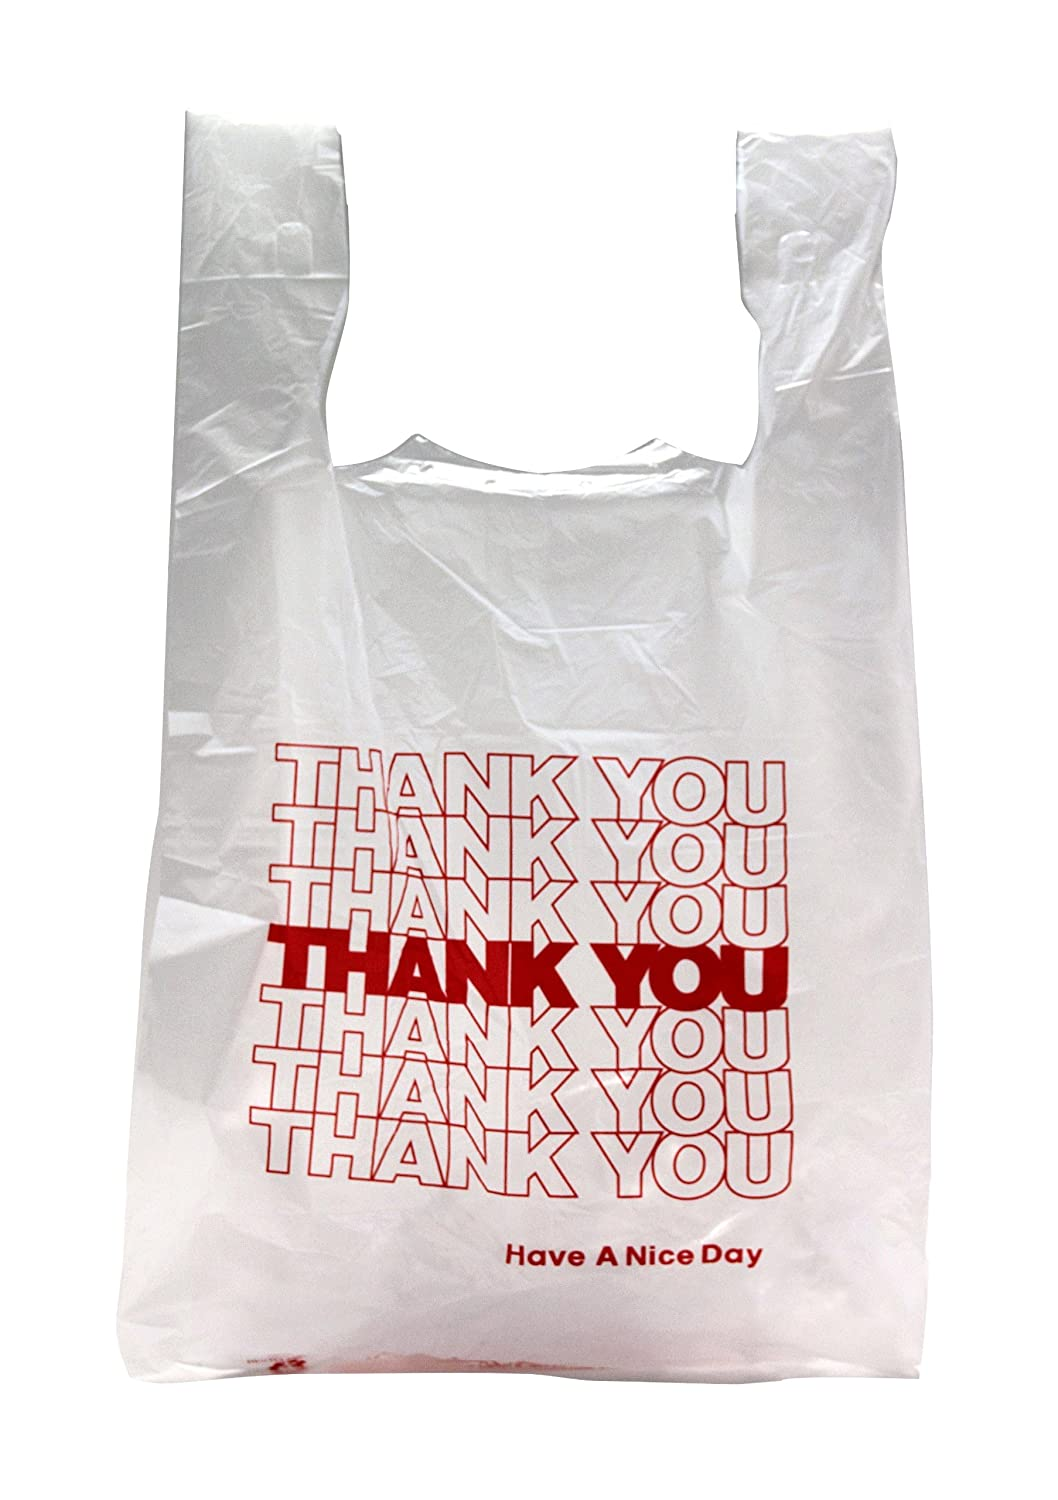 Black t shirt carryout bags - Amazon Com Thank You T Shirt Carry Out Plastic Shopping Bags White Case Of 500 Industrial Scientific